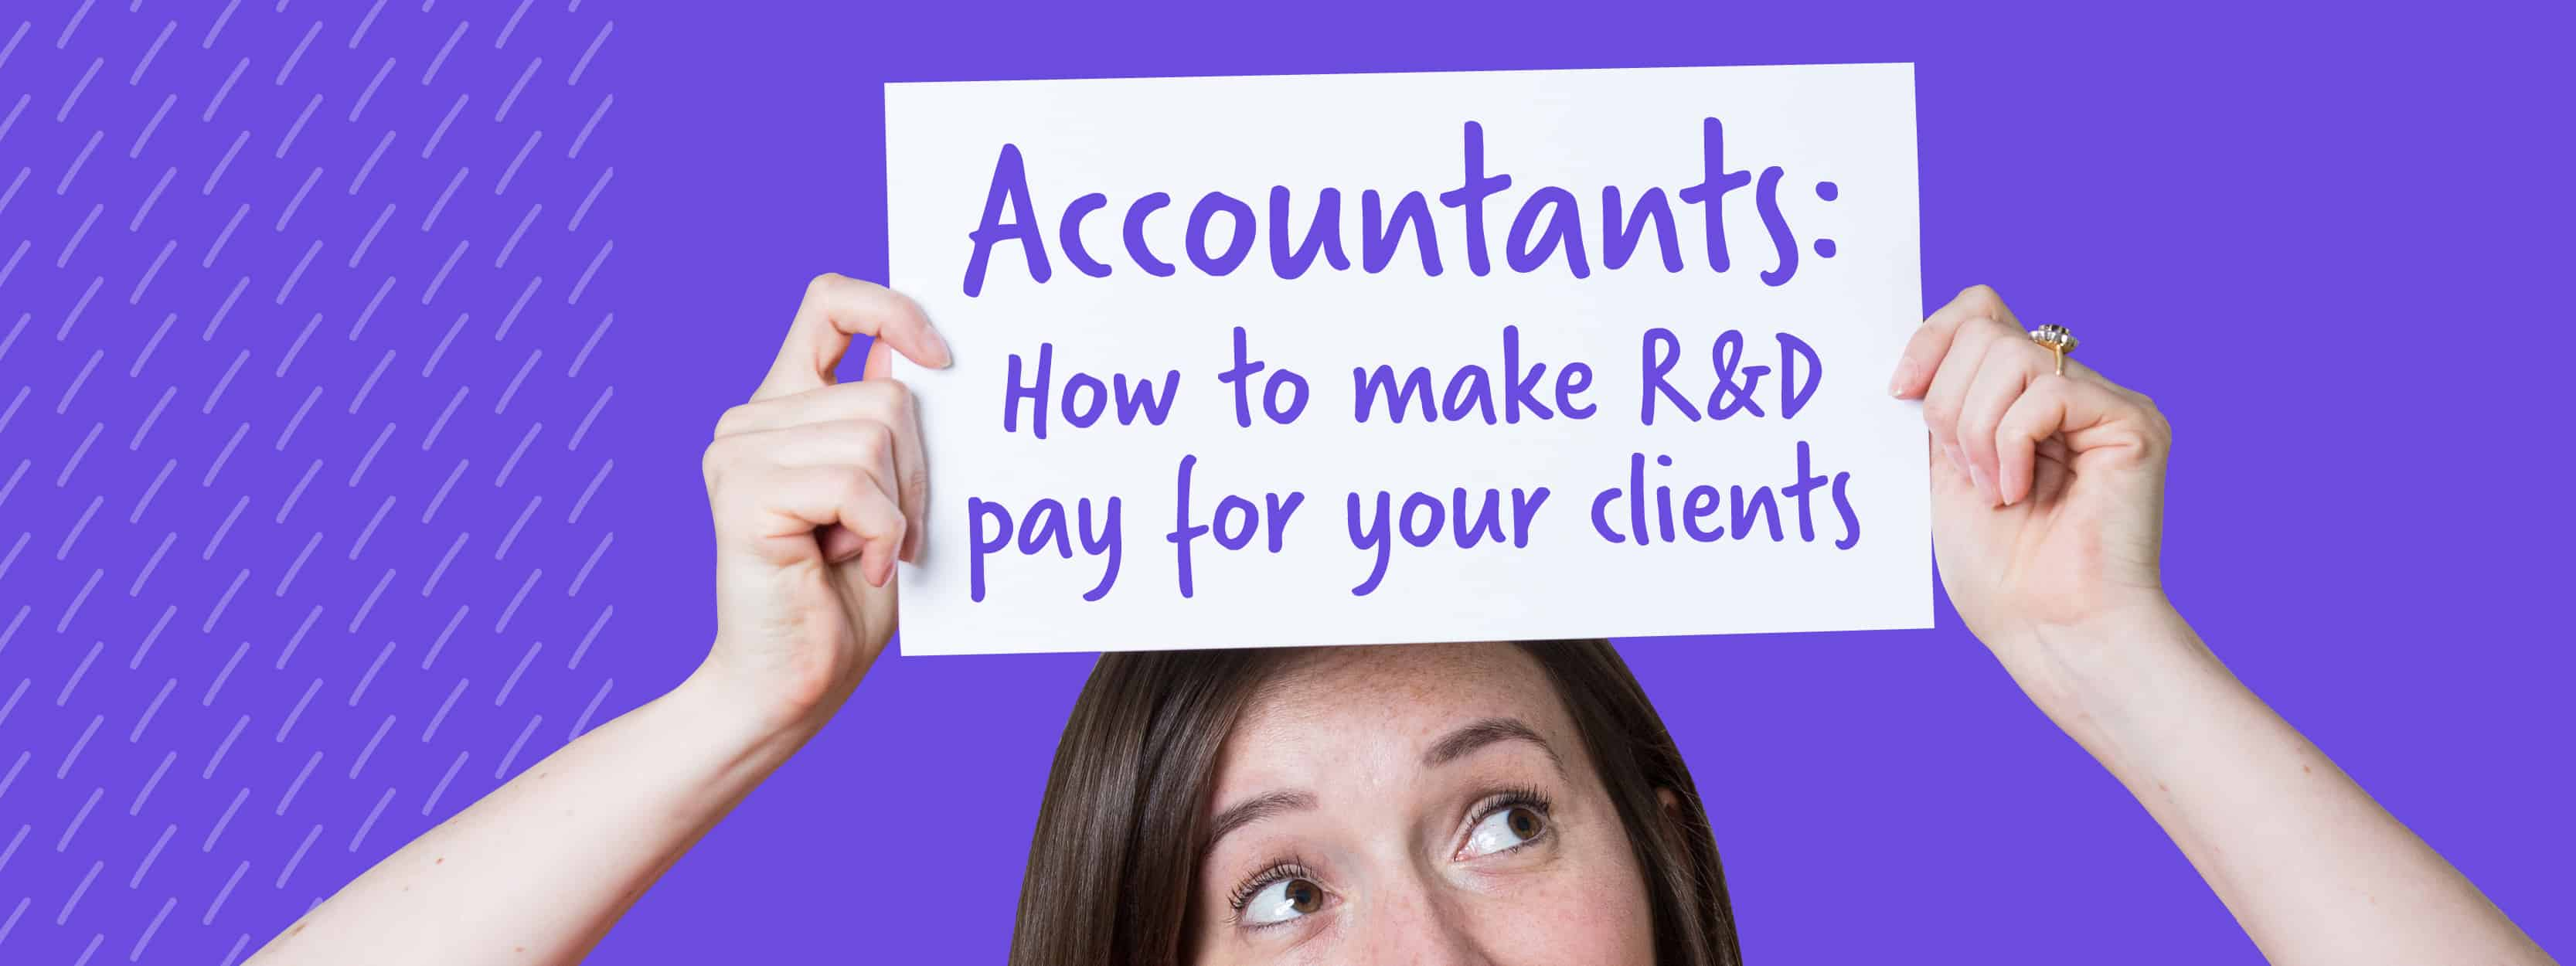 R&D sign for accountants